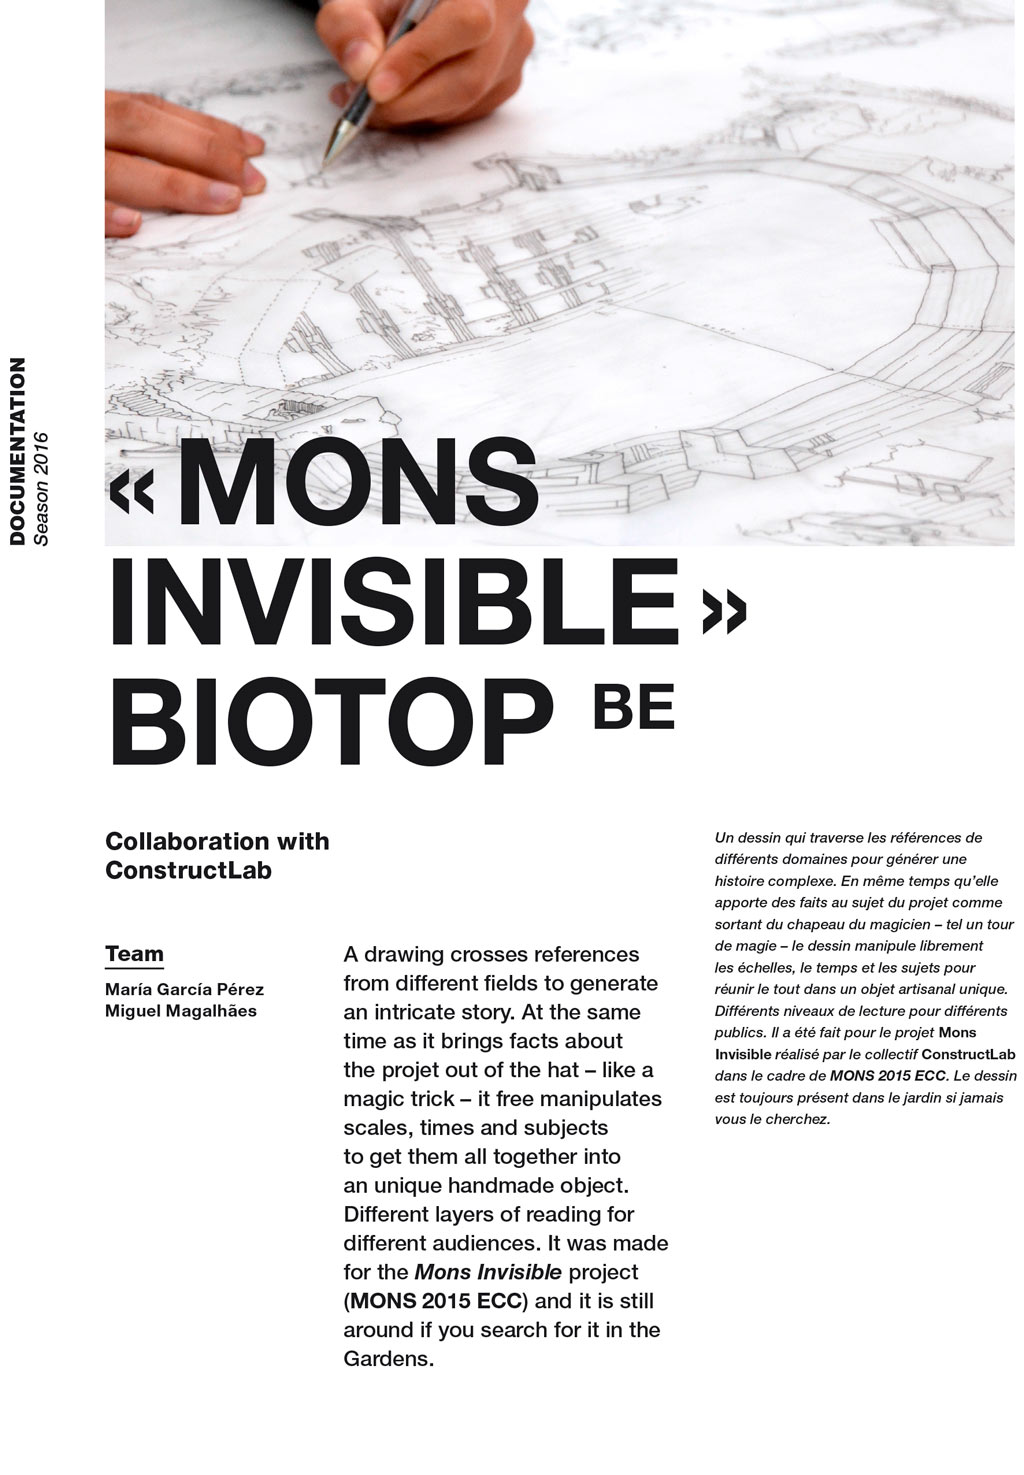 MonsInvisibleBiotop-page